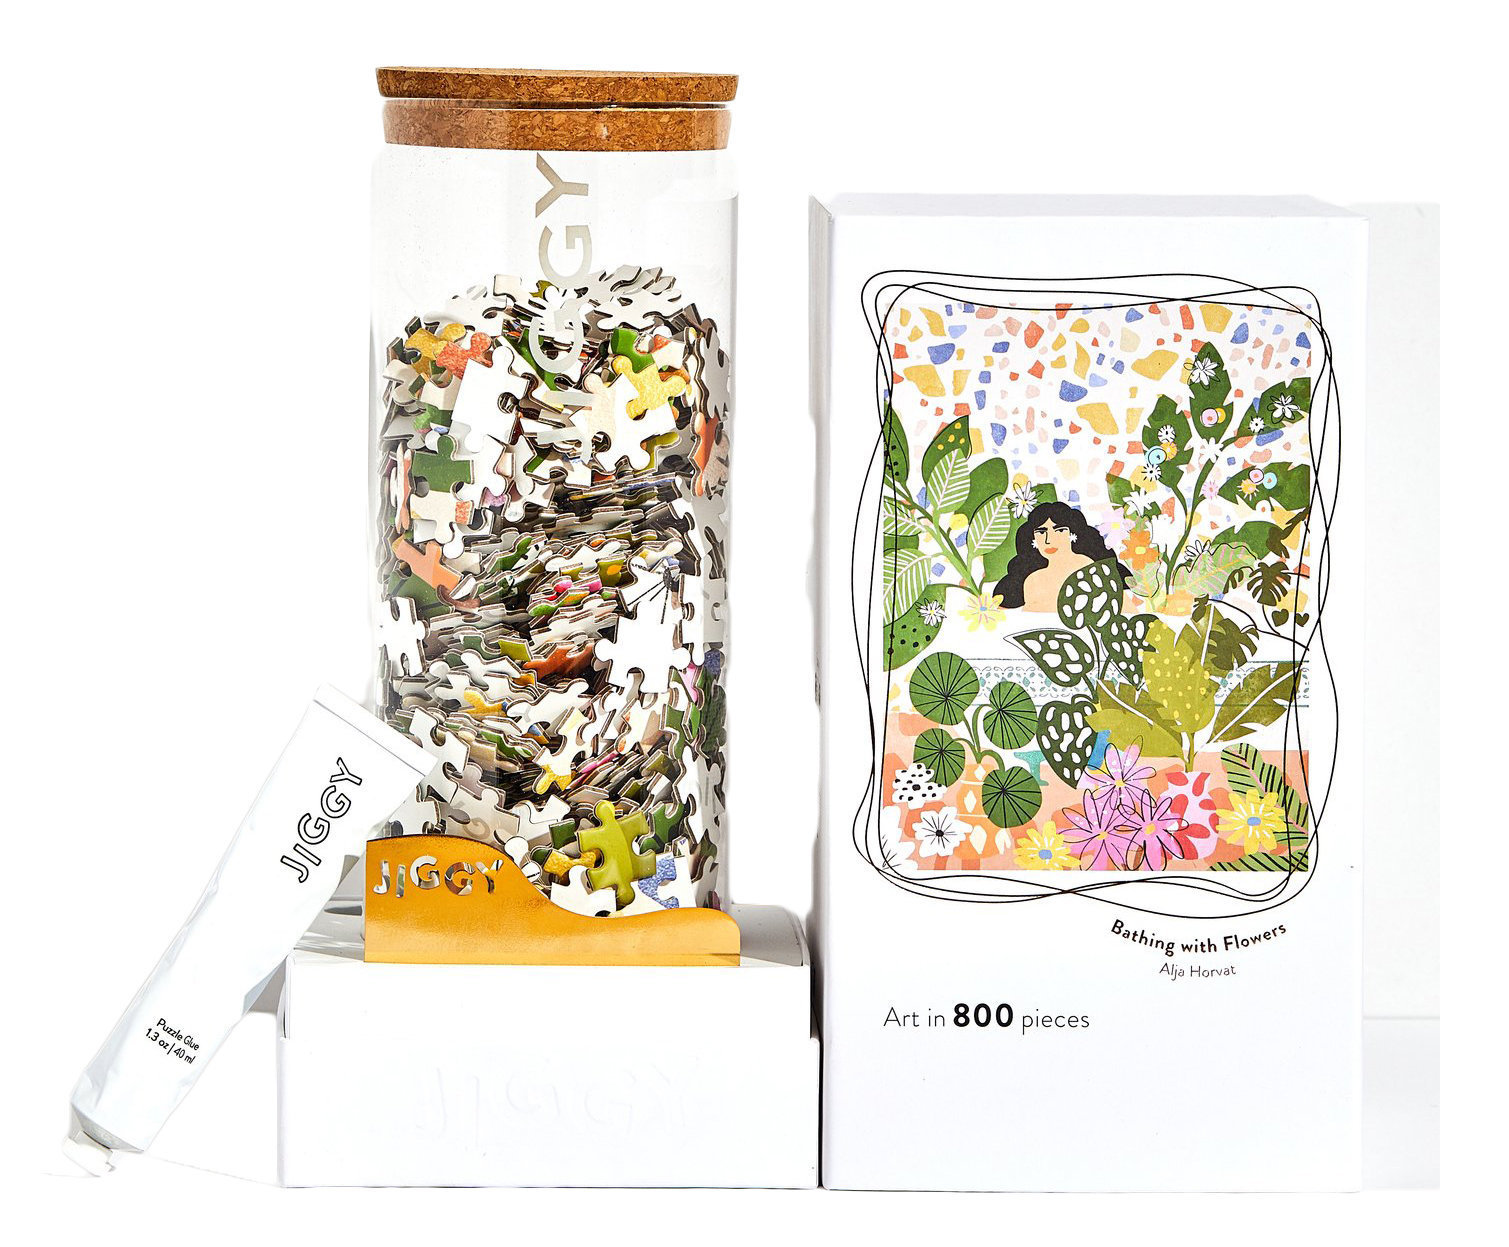 Best Christmas gifts 2019 - Jiggy Puzzles Bathing with Flowers